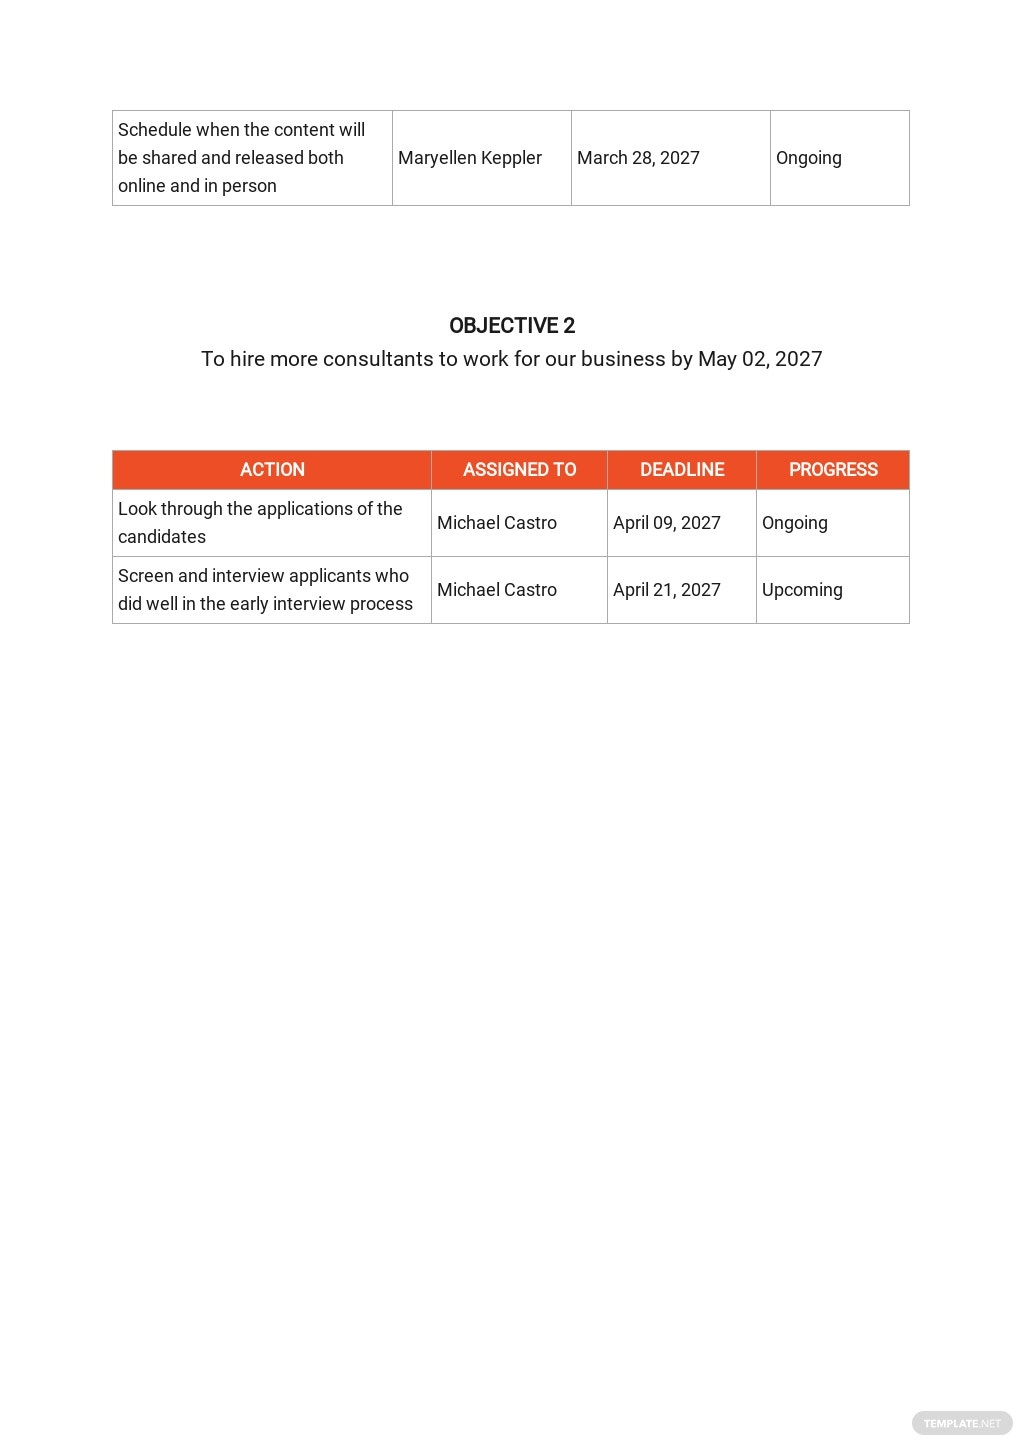 Consultant Work Plan Template 4.jpe